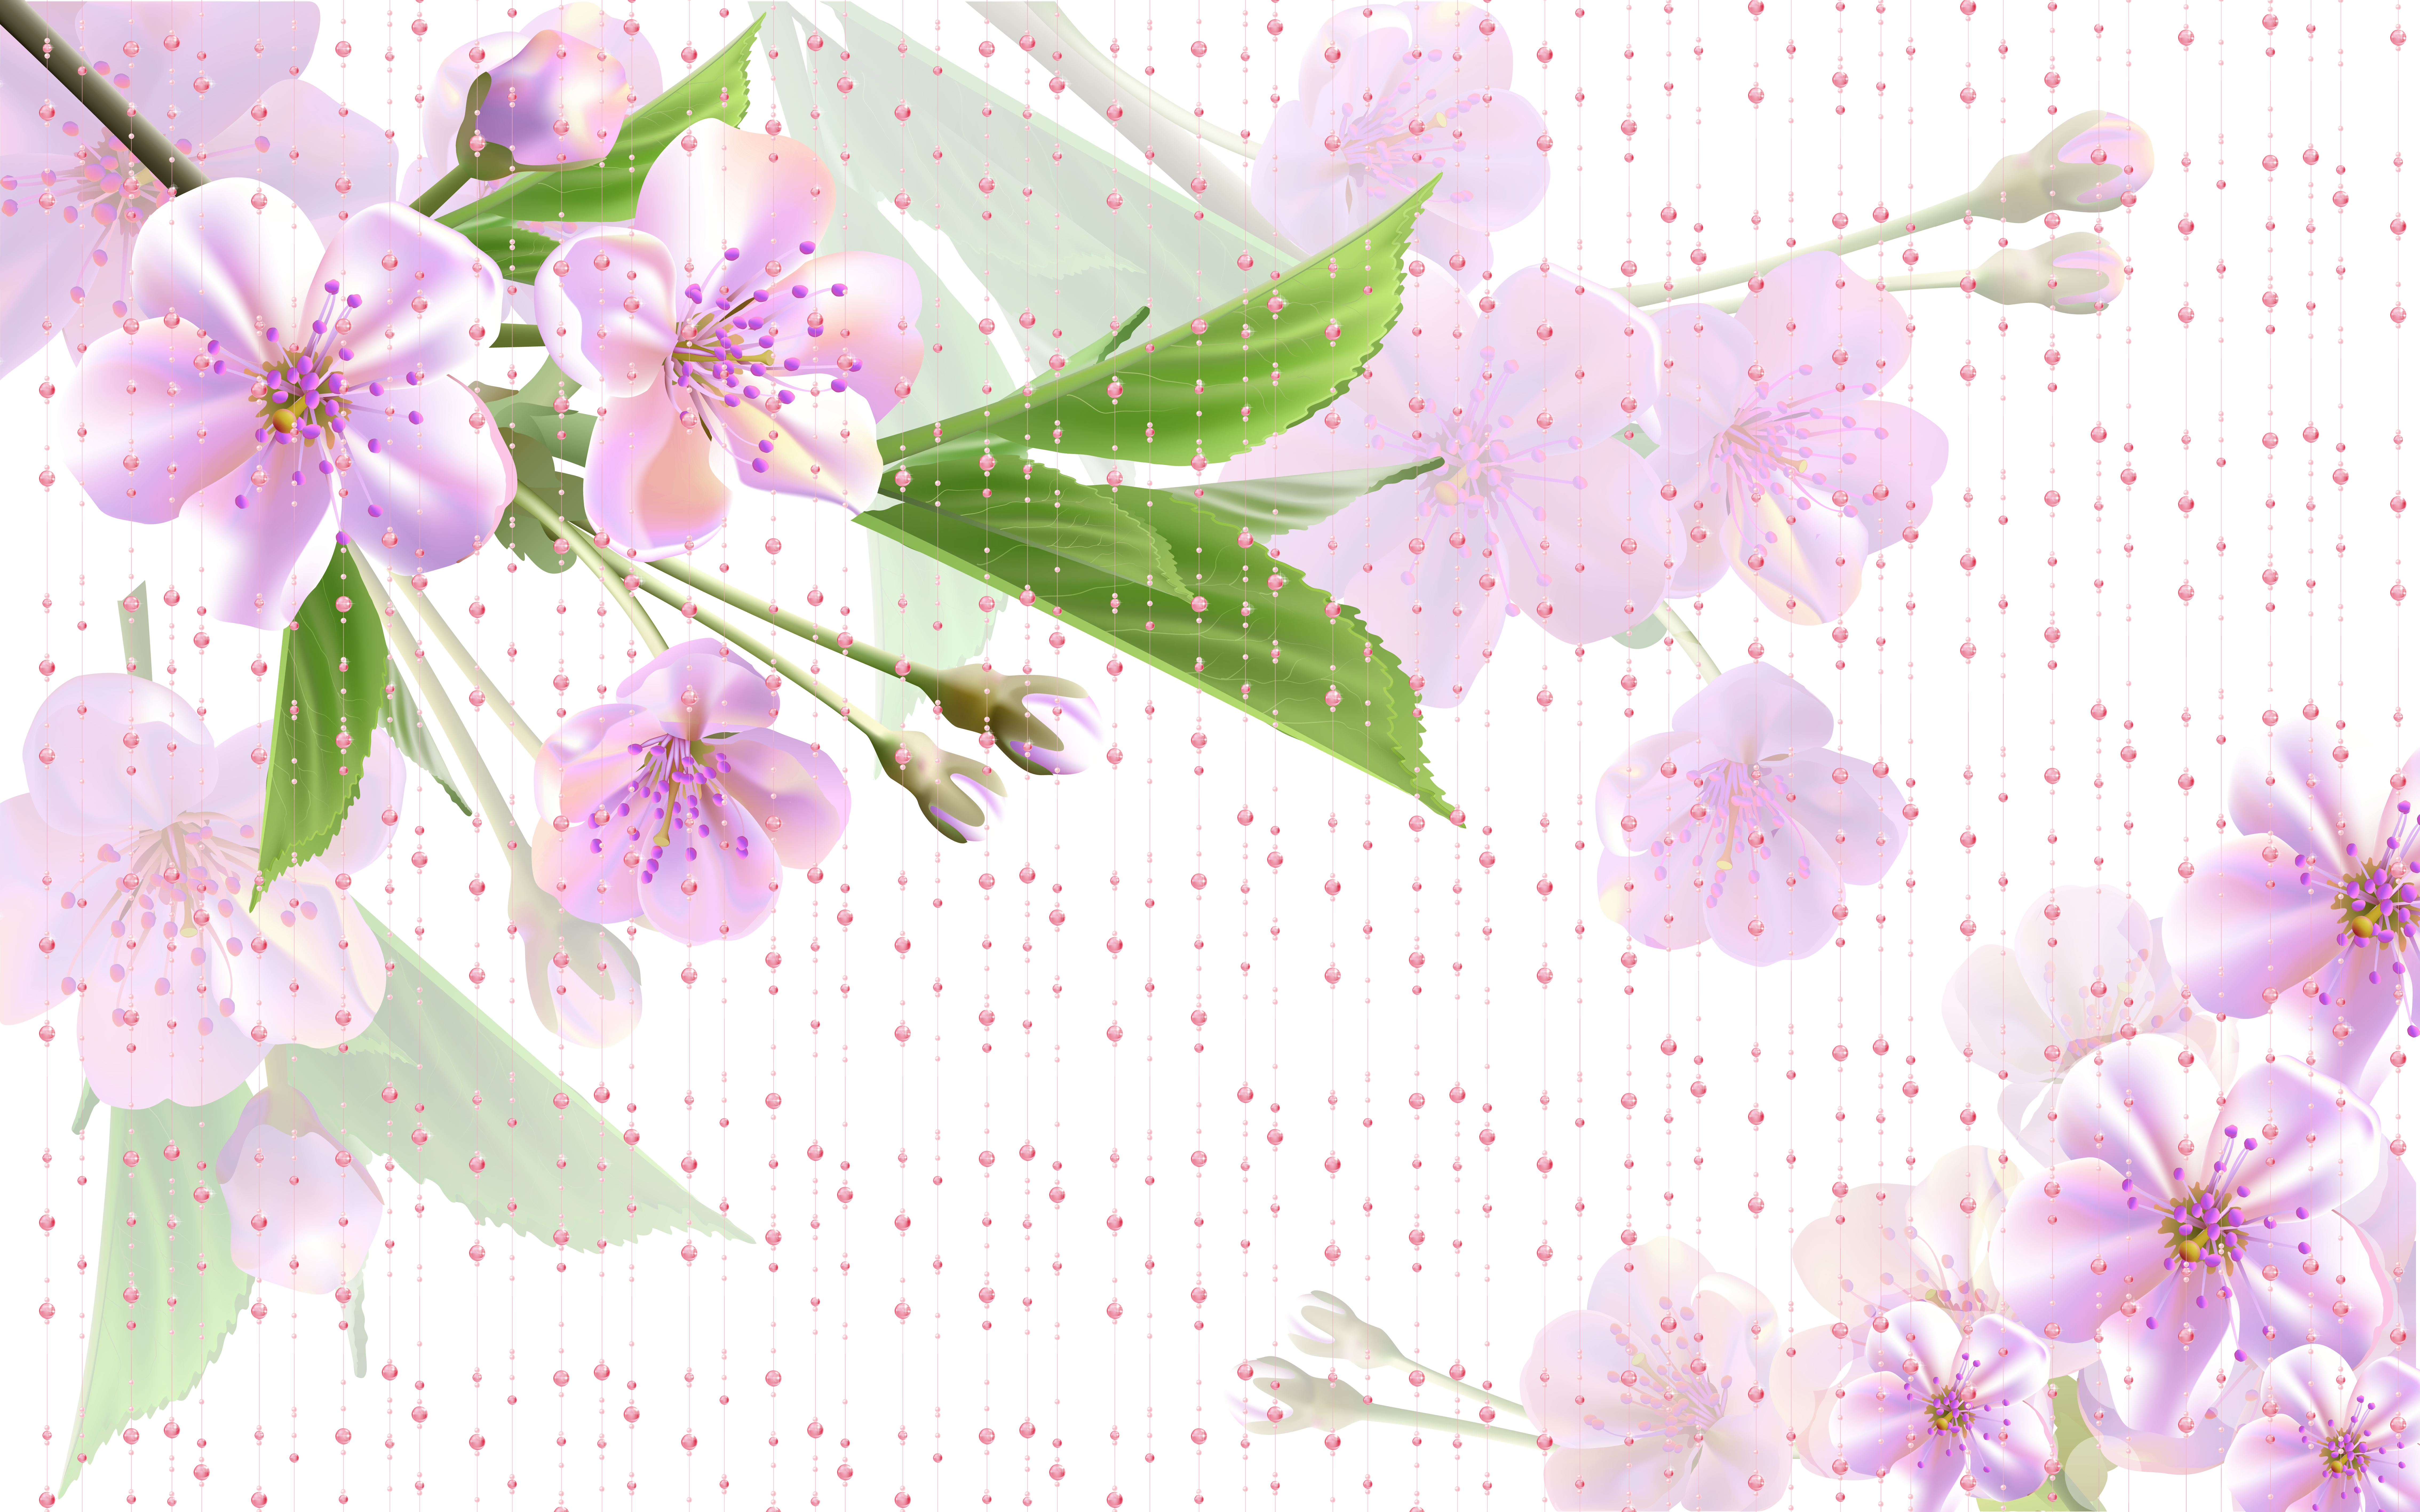 Flower background png images. Pink fantasy flowers transprent